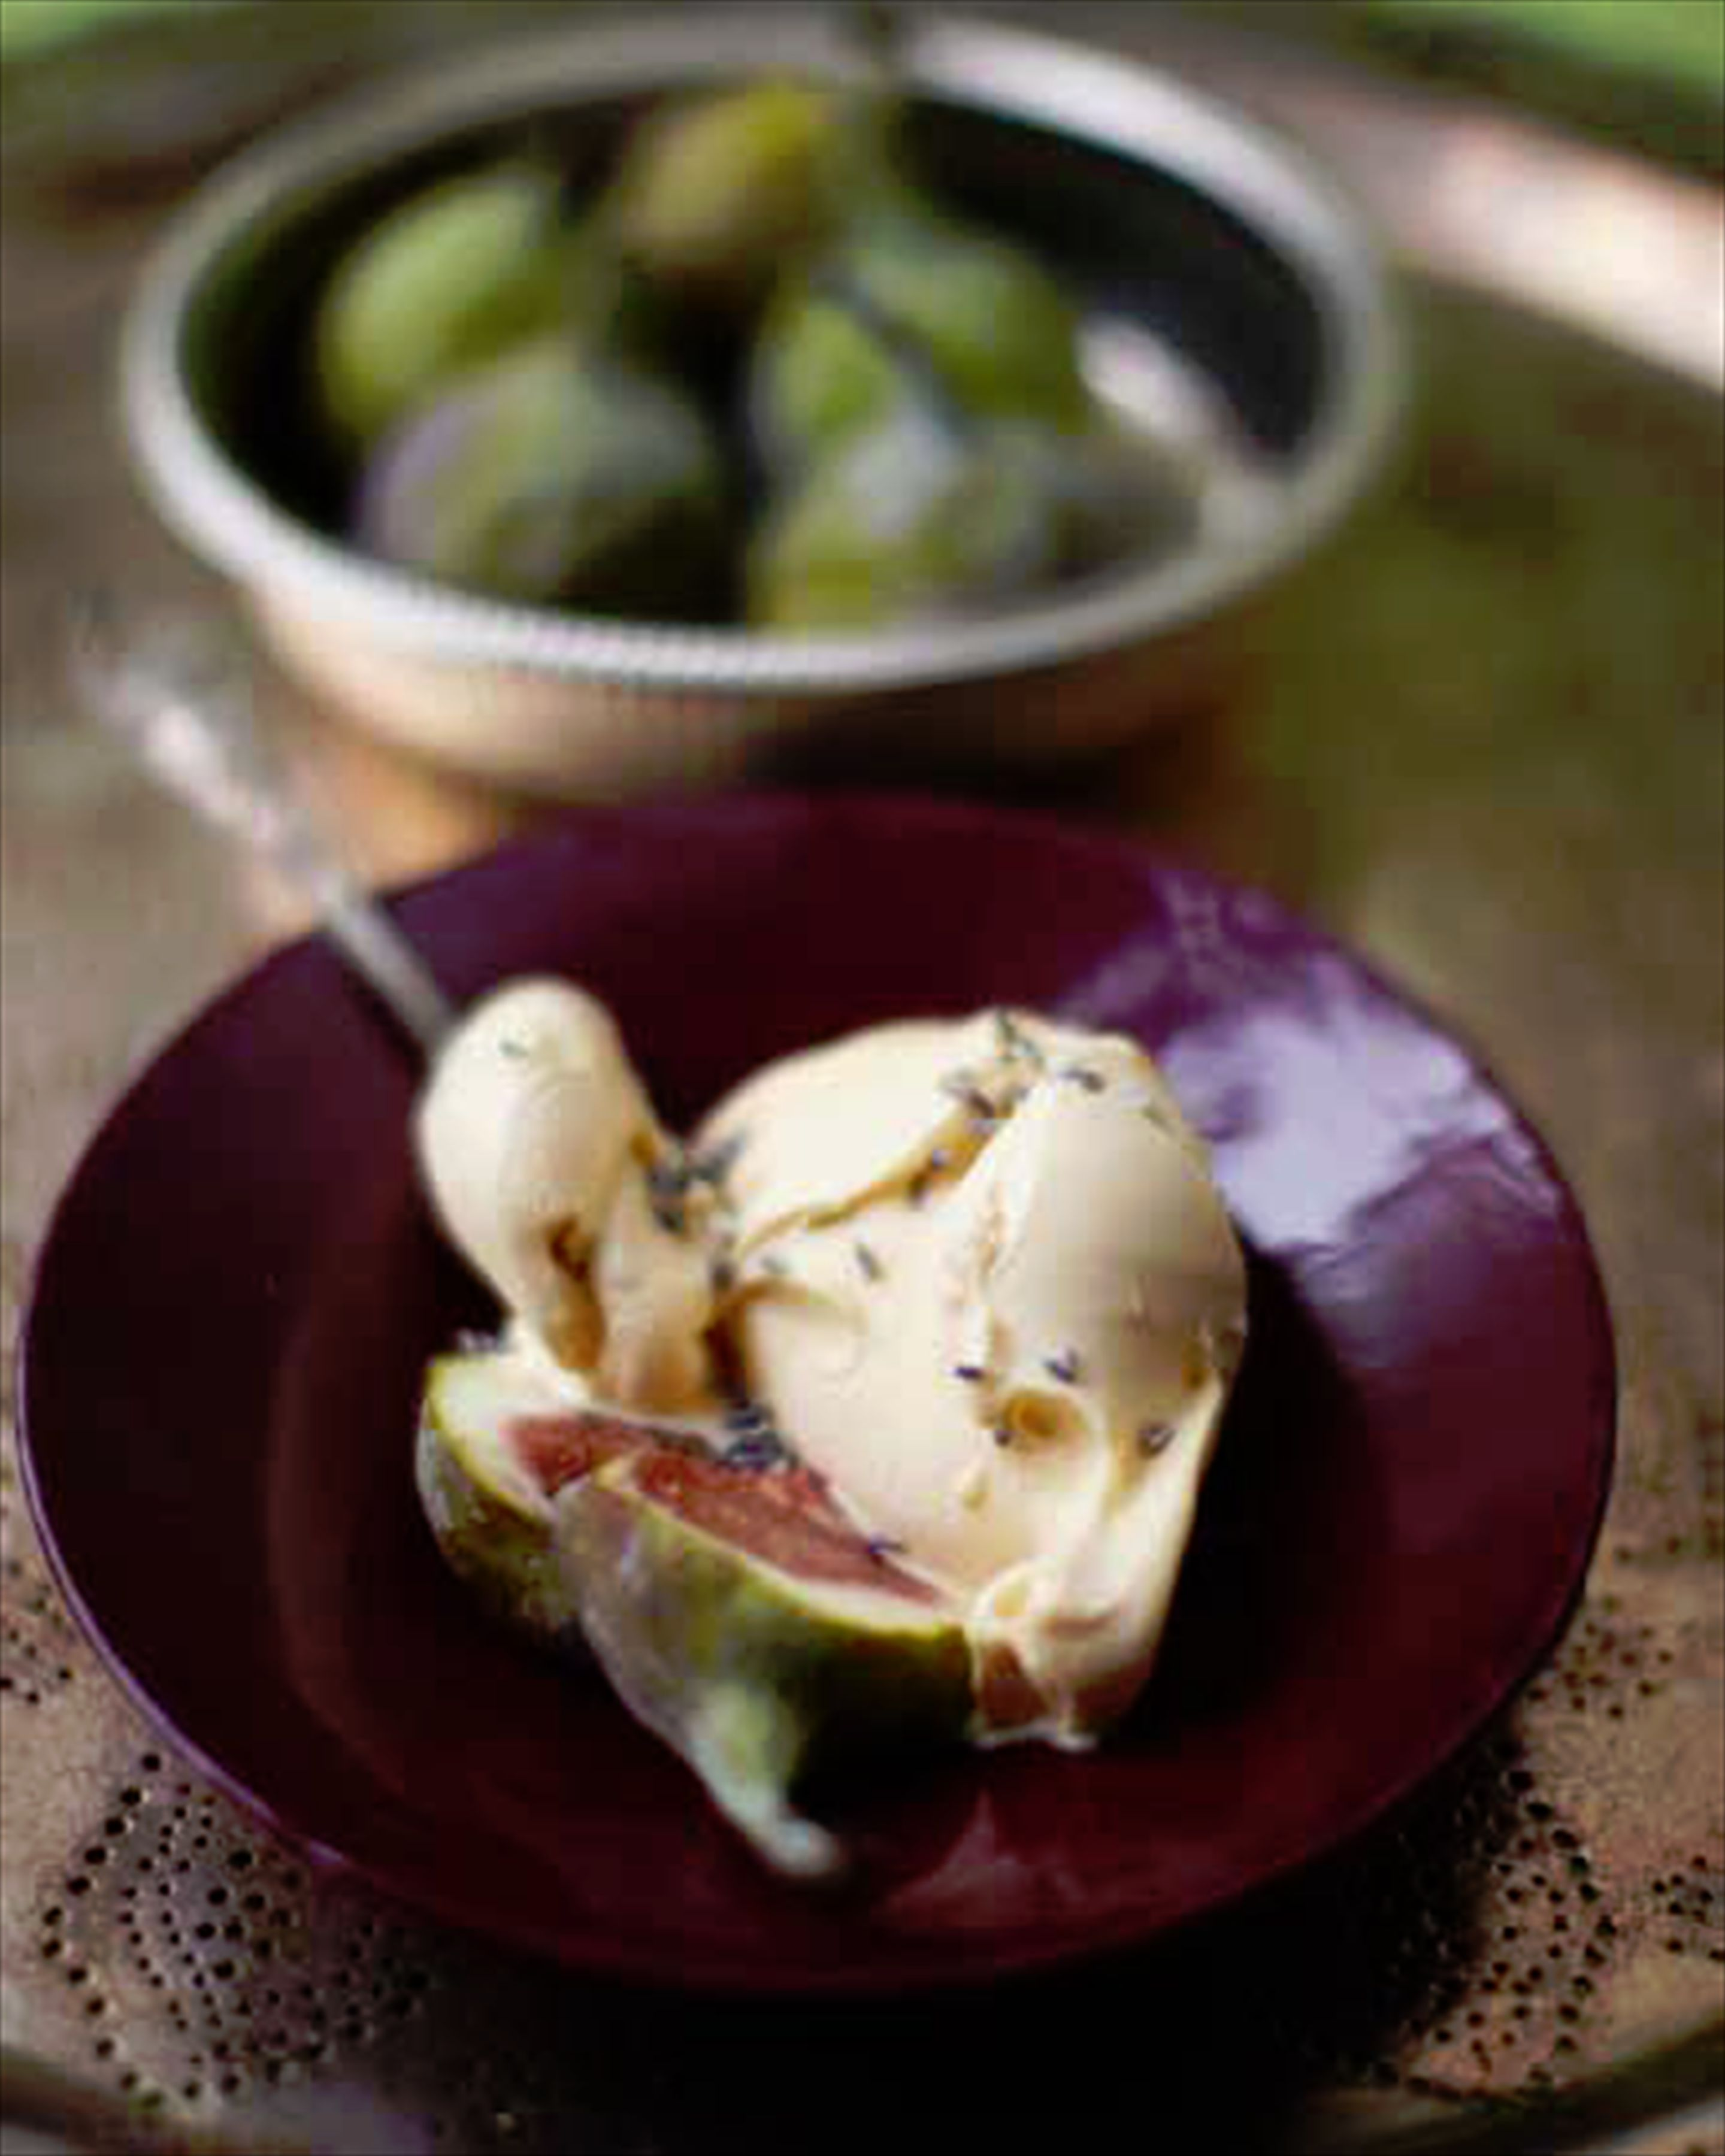 Figs with almond-milk ice cream